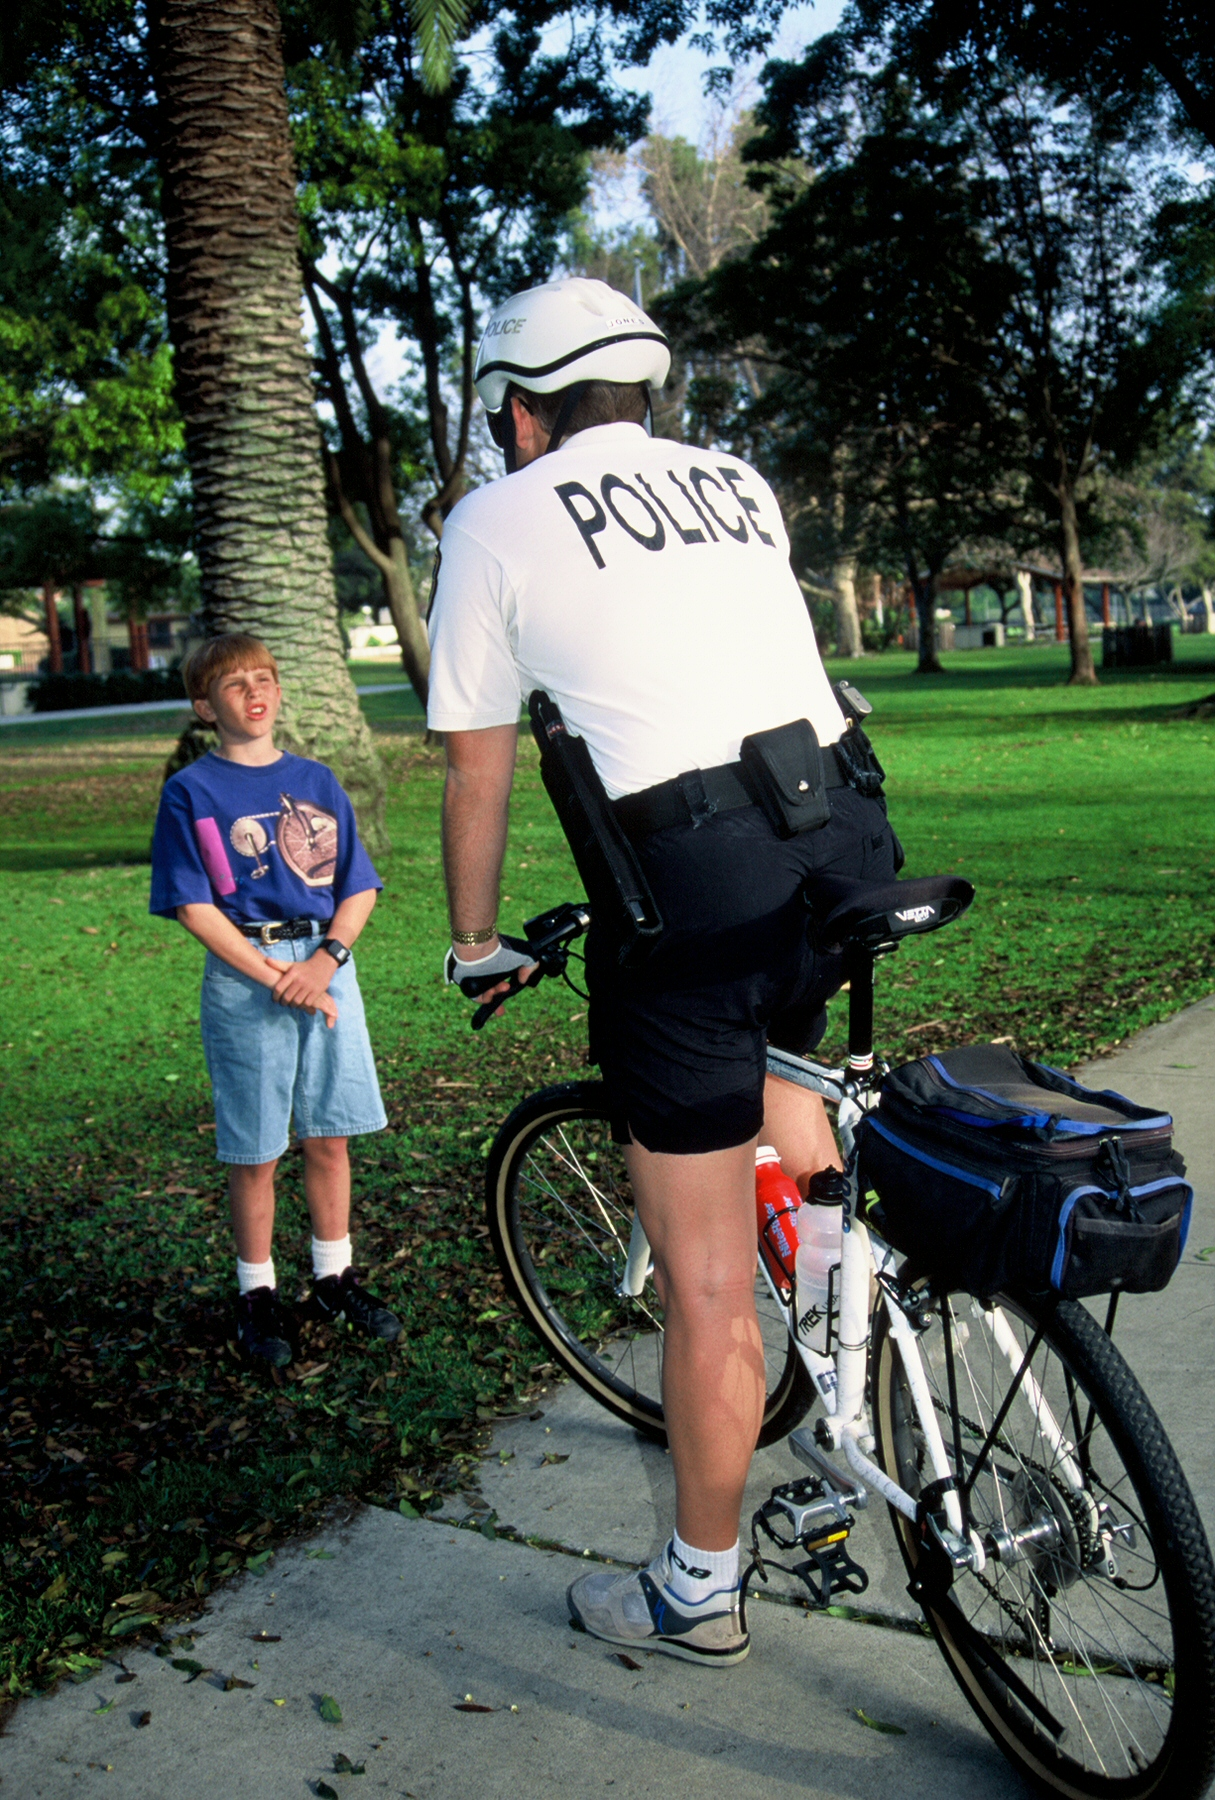 Bicycle Officer.